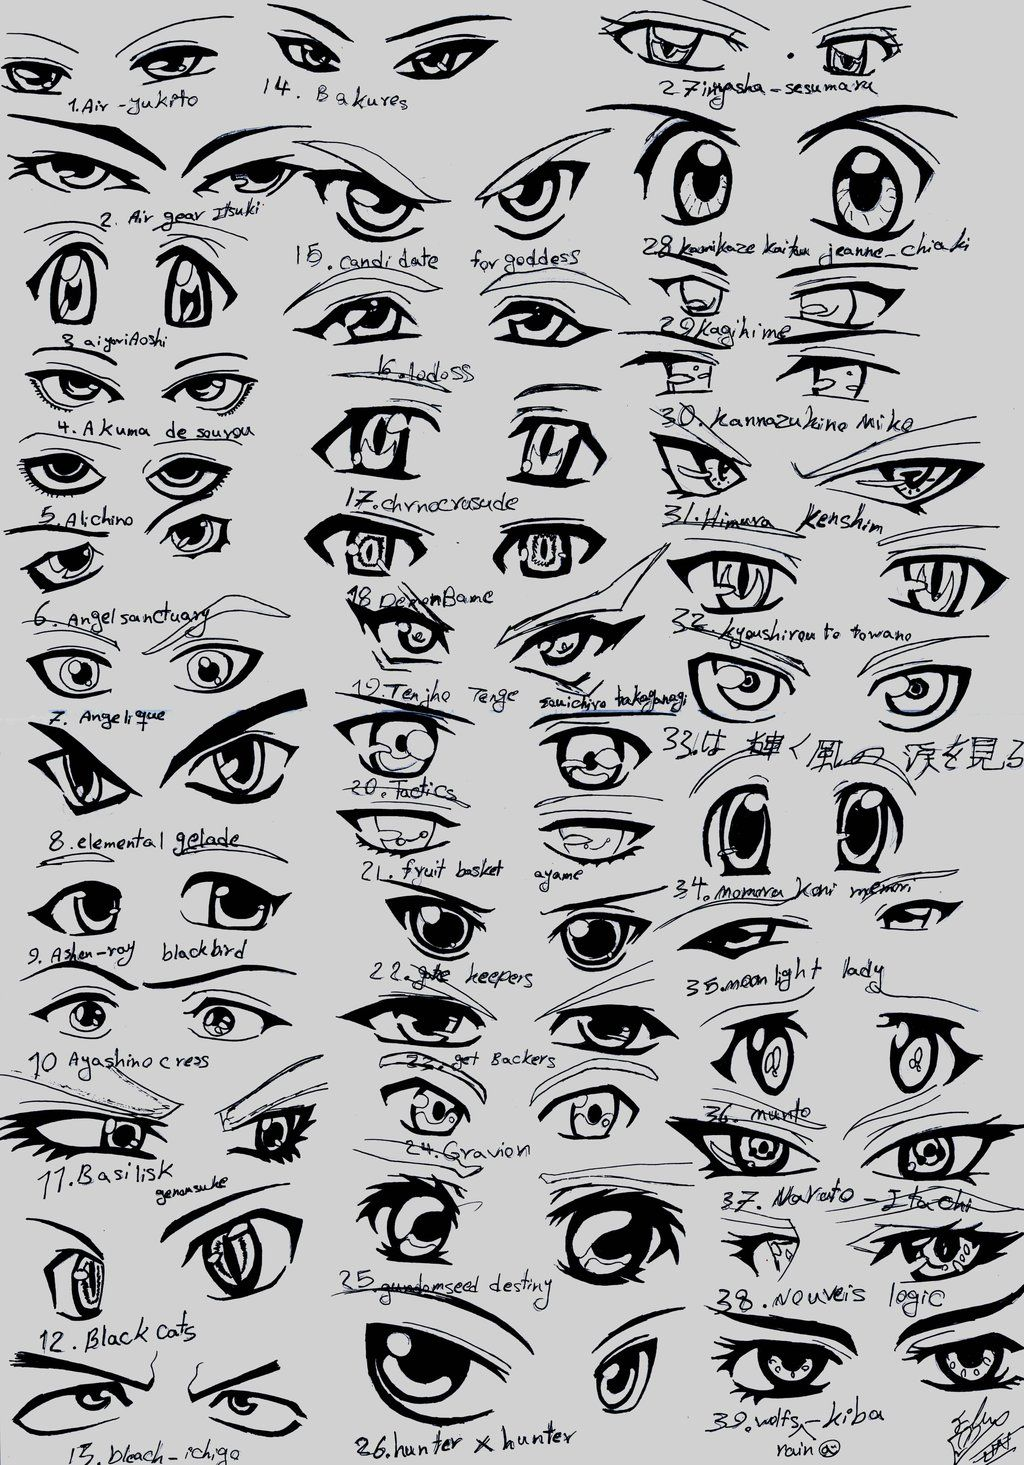 39 male anime eyes by How to